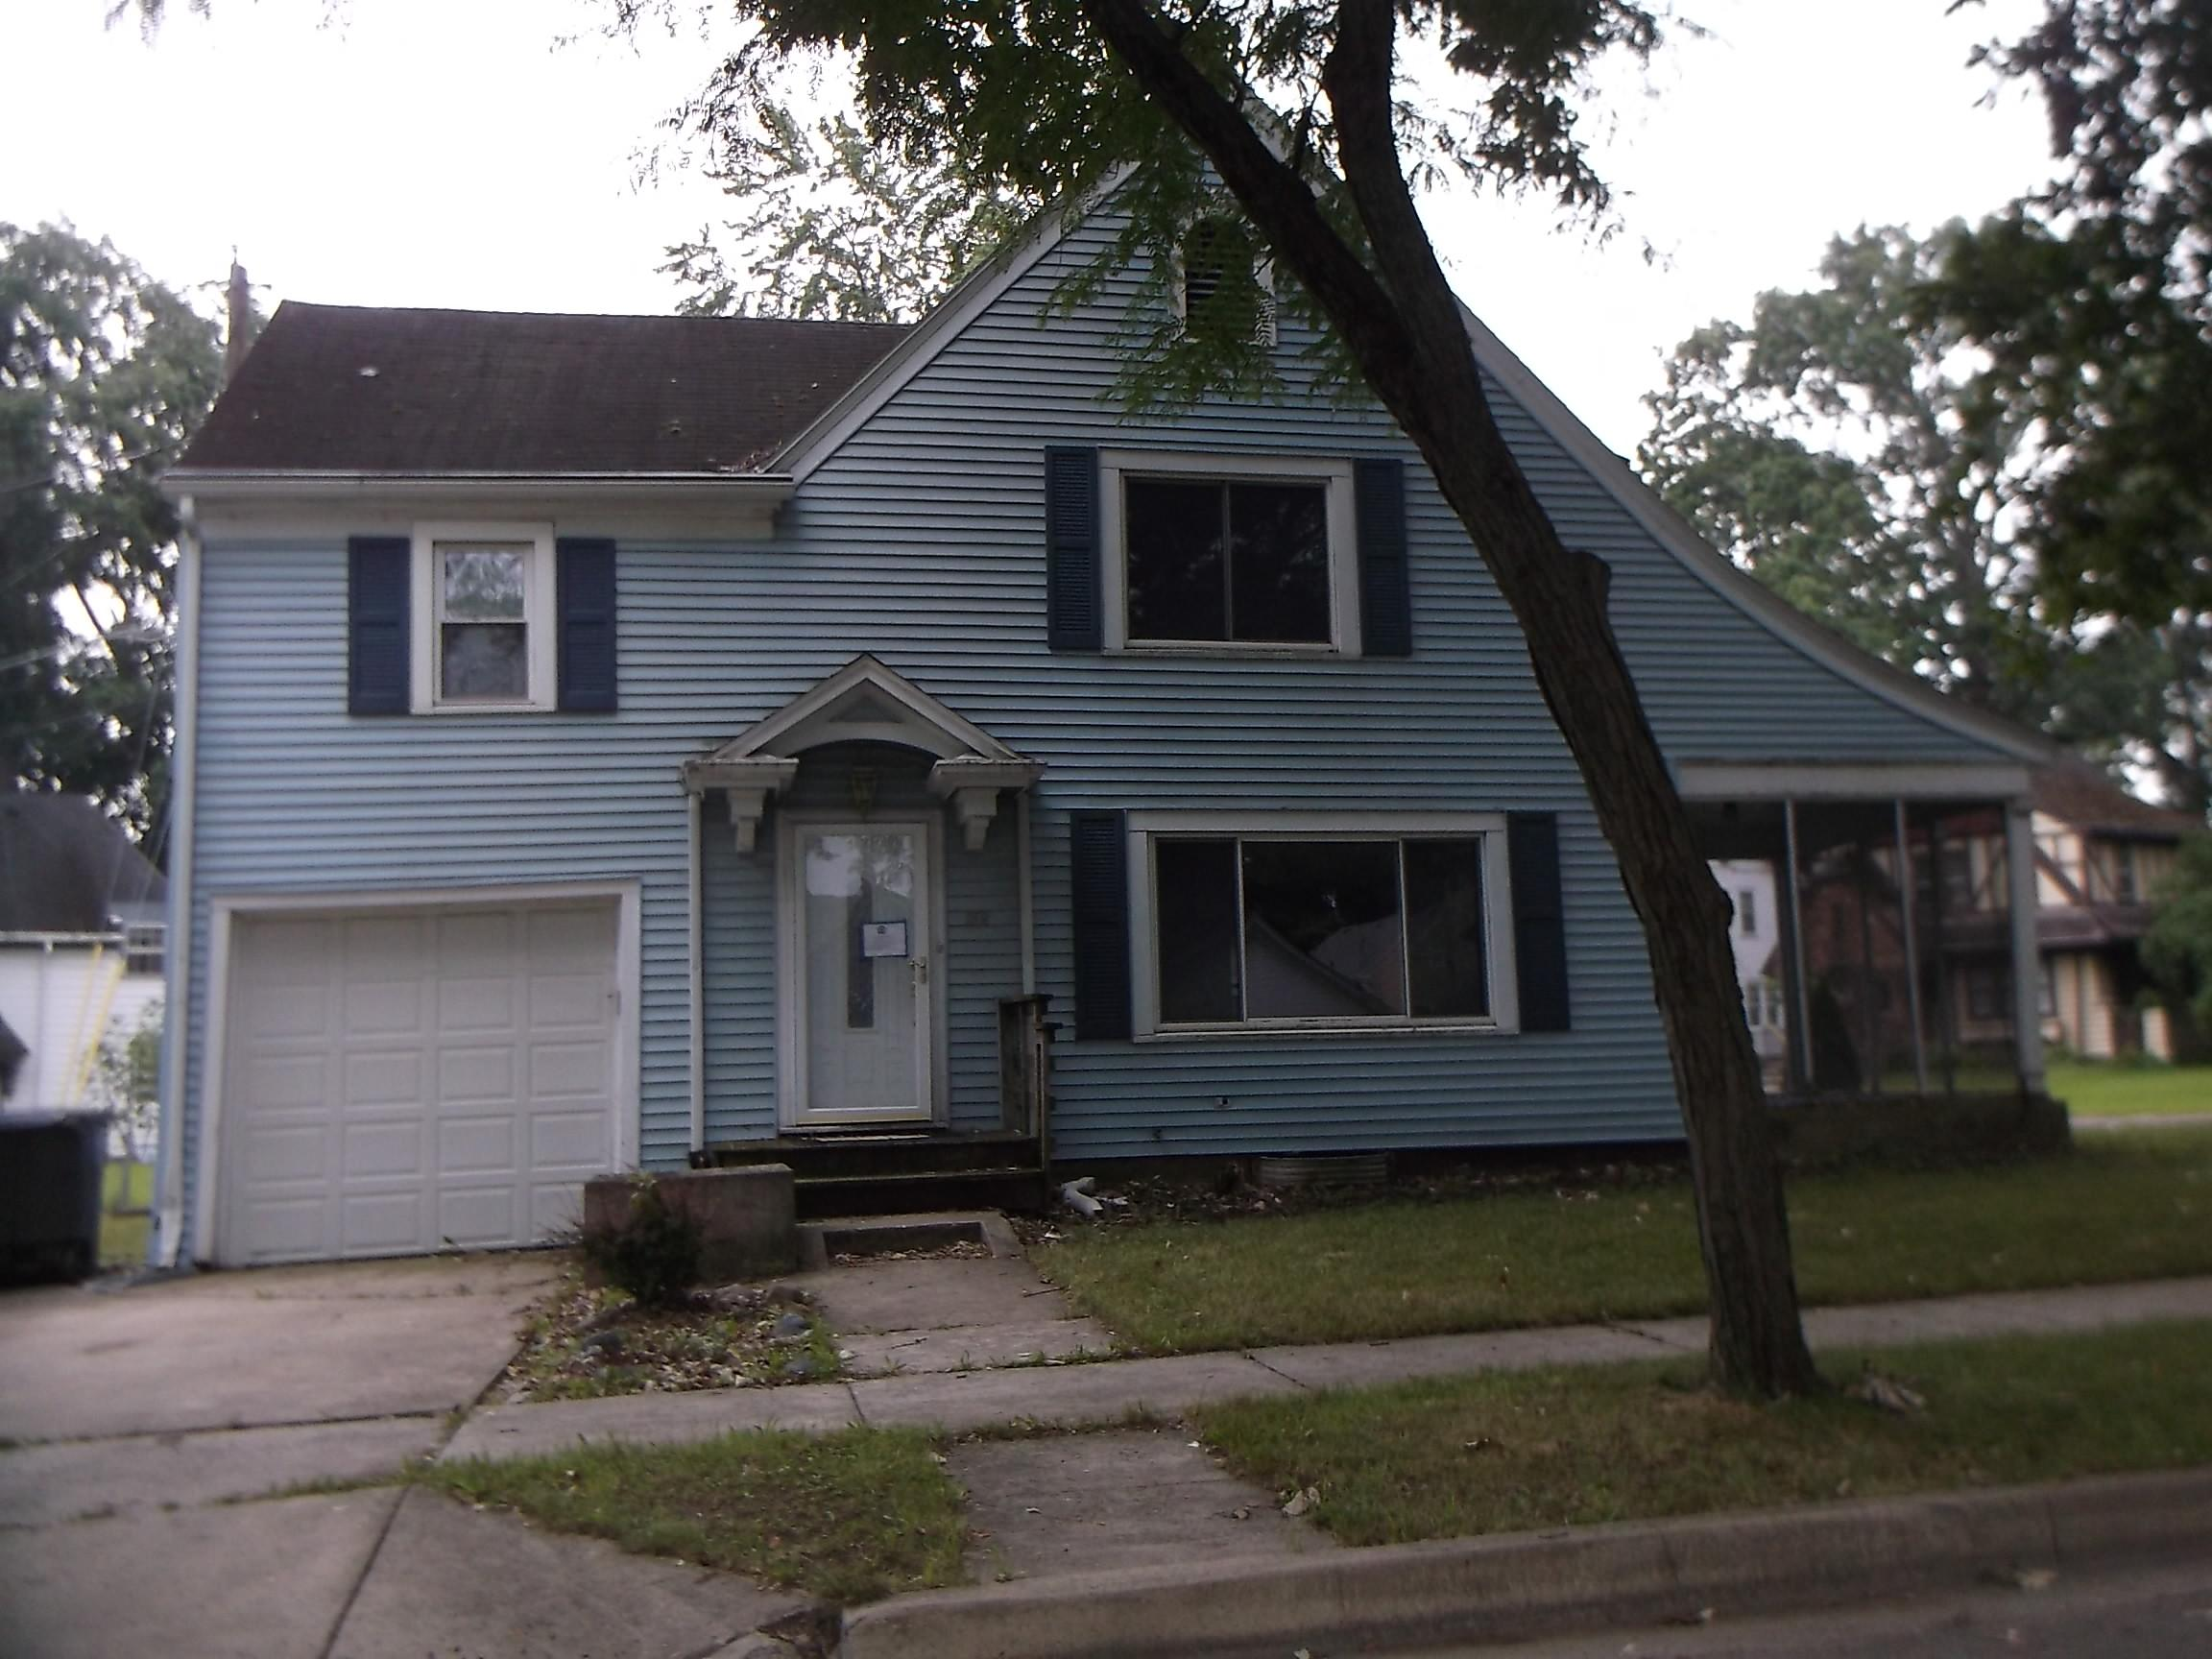 258 E Maple Grove Ave, Fort Wayne, IN 46806